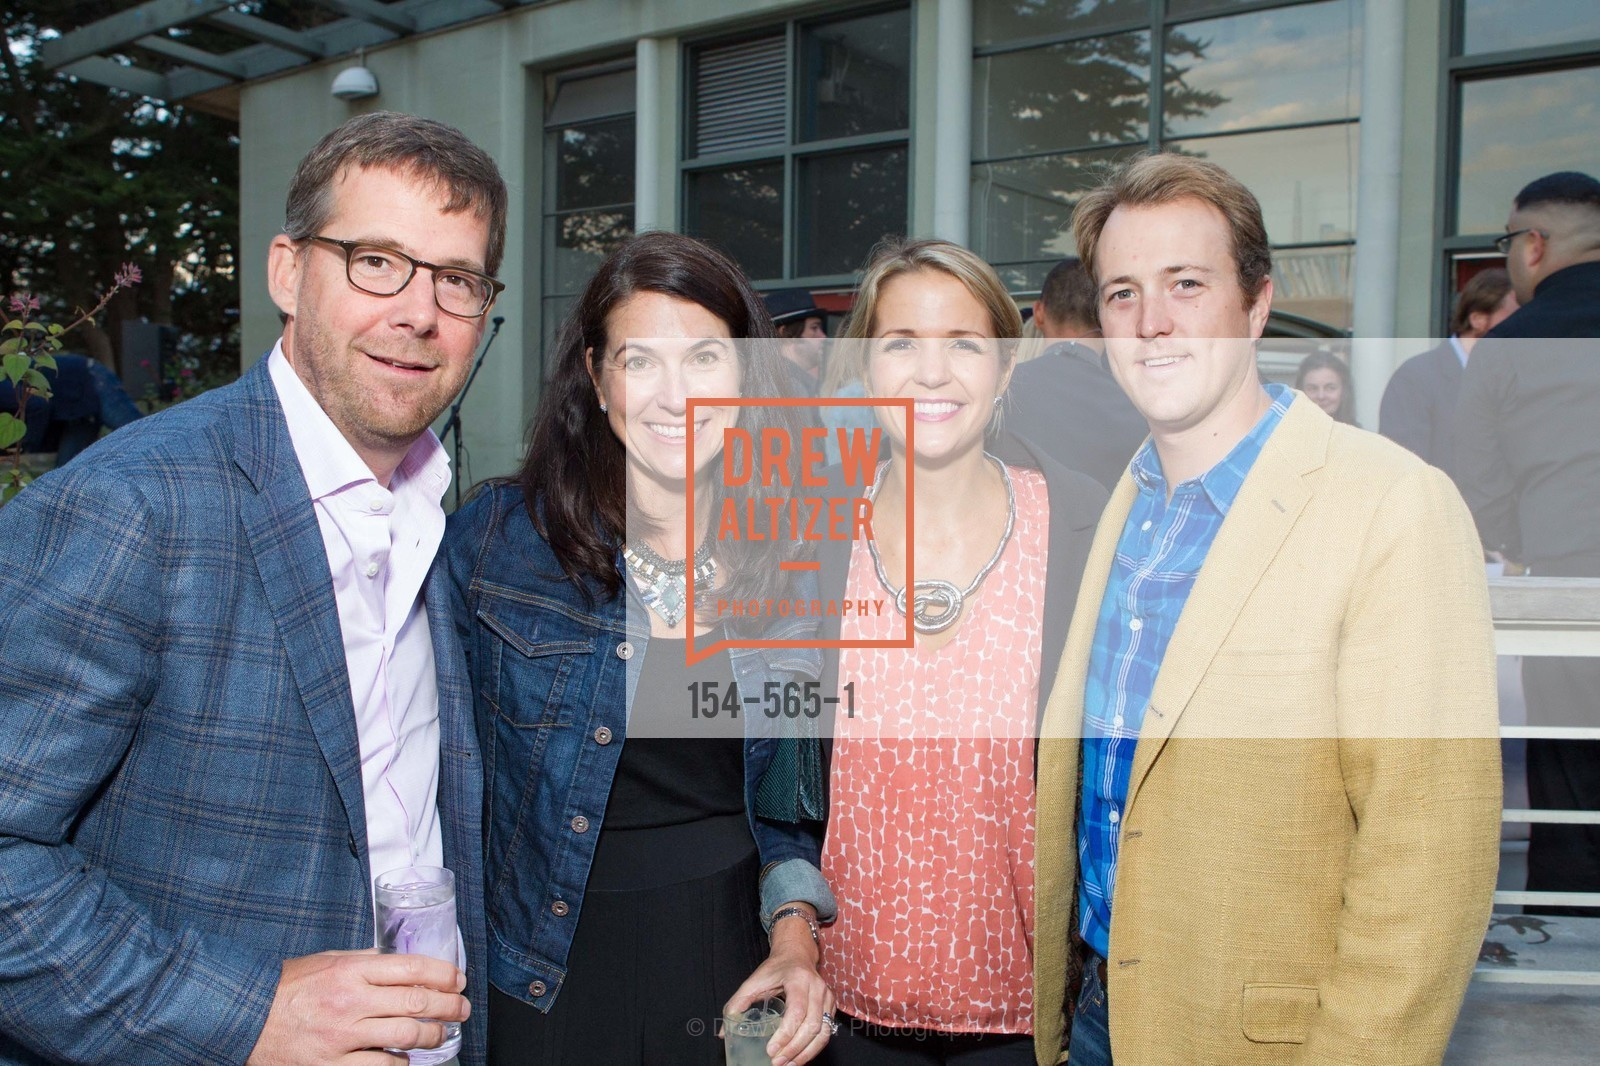 David Hatfield, Jen Hatfield, Ashley Adamson, Chris Coakley, GLAAD GALA Kick-Off Party Hosted by SAKS FIFTH AVENUE, Saks Fifth Avenue. 384 Post Street, September 12th, 2014,Drew Altizer, Drew Altizer Photography, full-service agency, private events, San Francisco photographer, photographer california